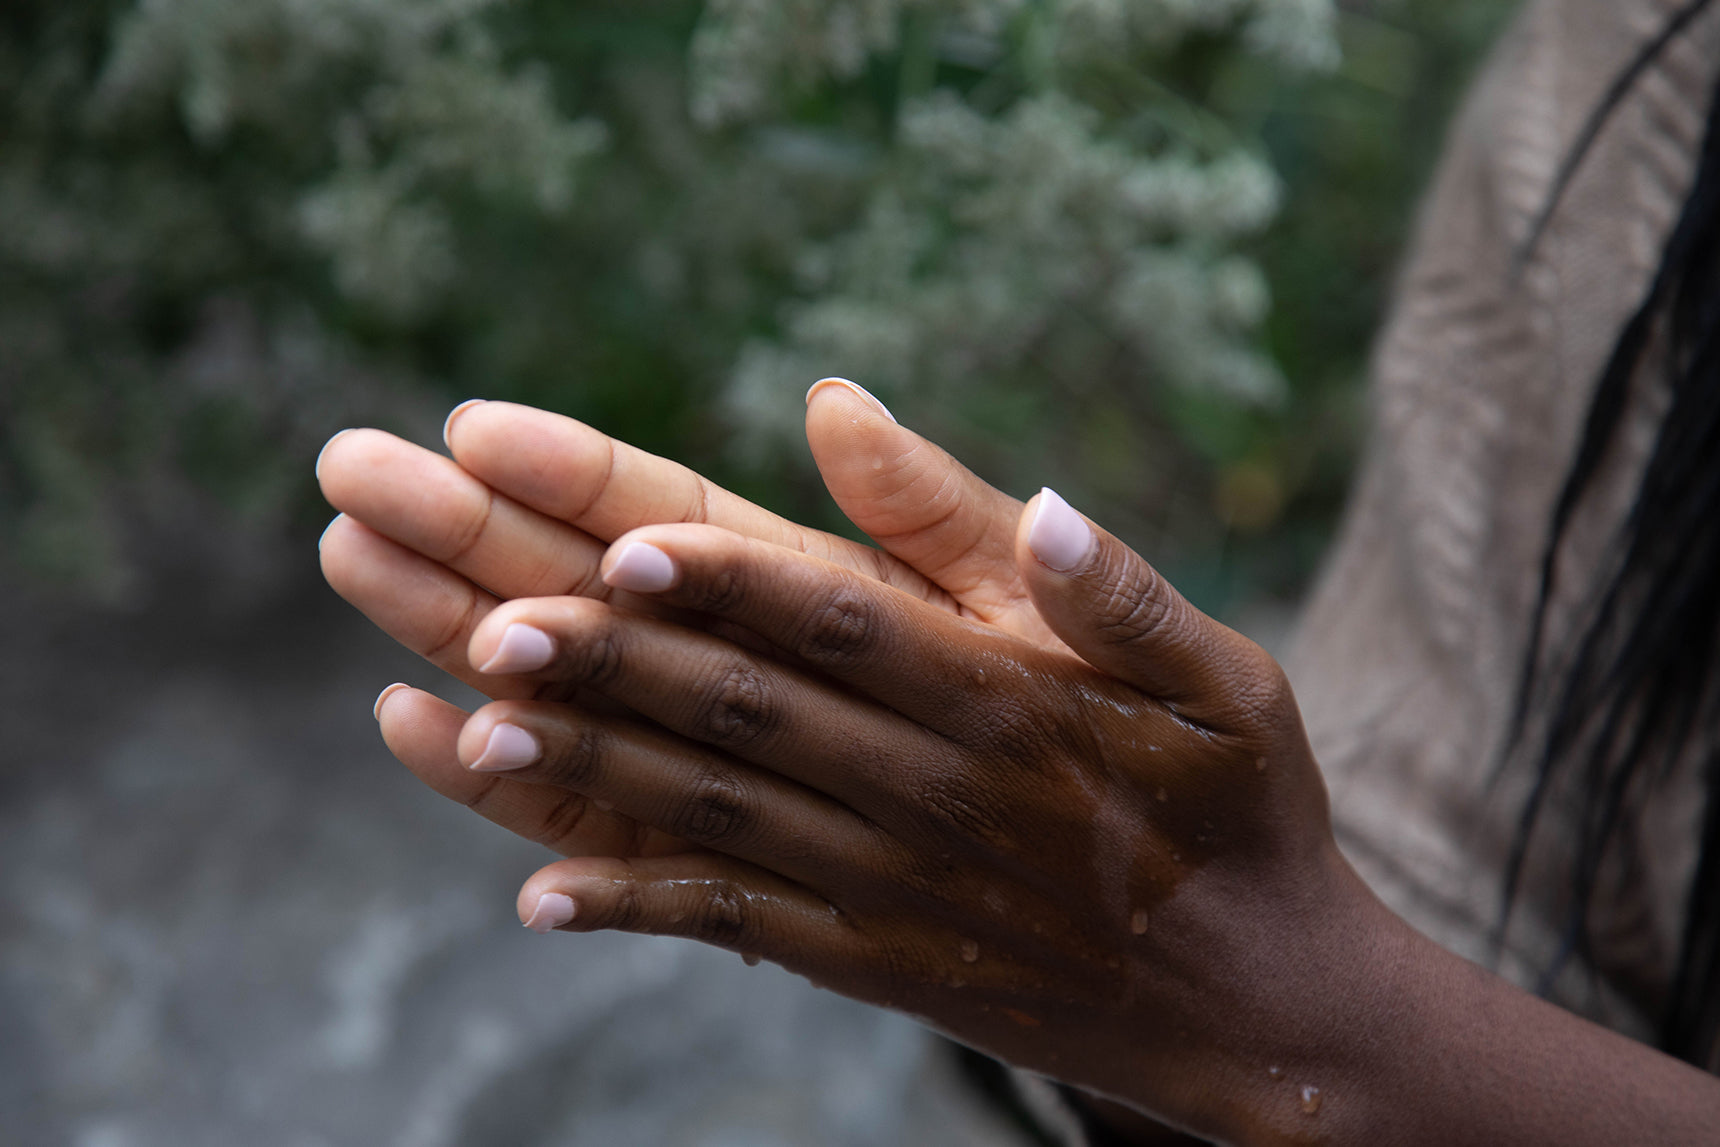 Oil and Water on hand